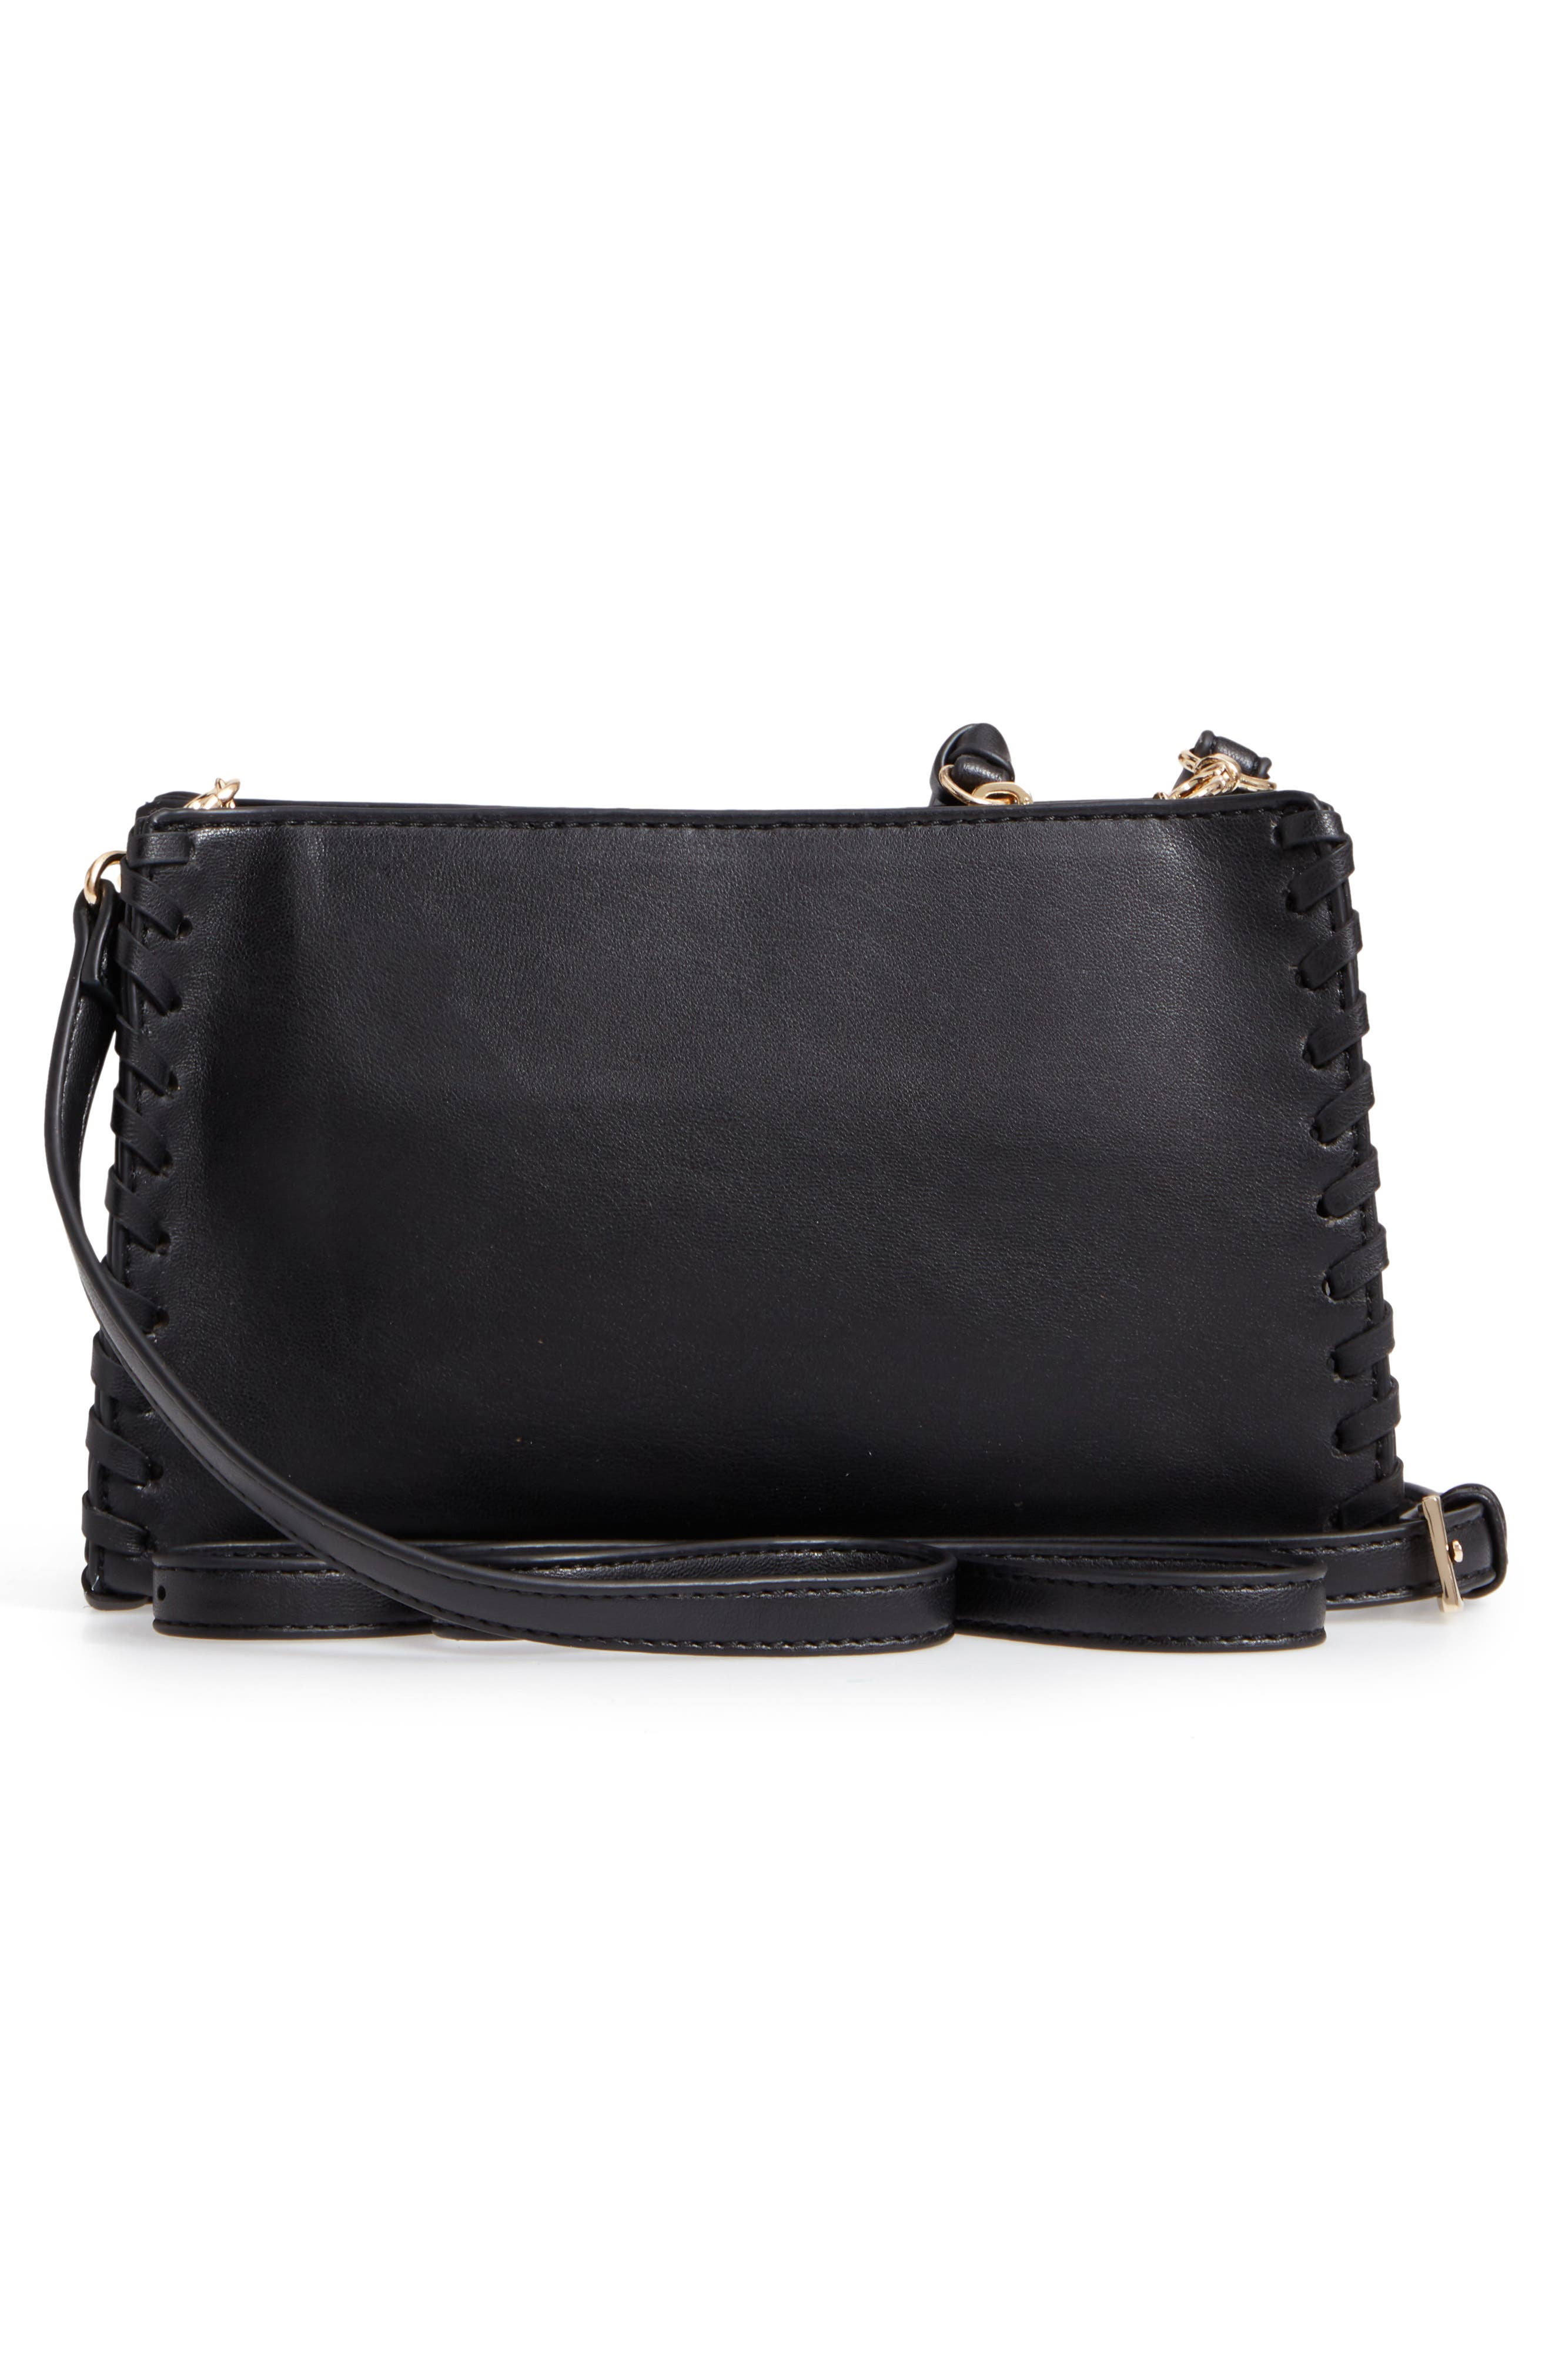 Cadence Whipstitch Faux Leather Crossbody Bag,                             Alternate thumbnail 3, color,                             Black